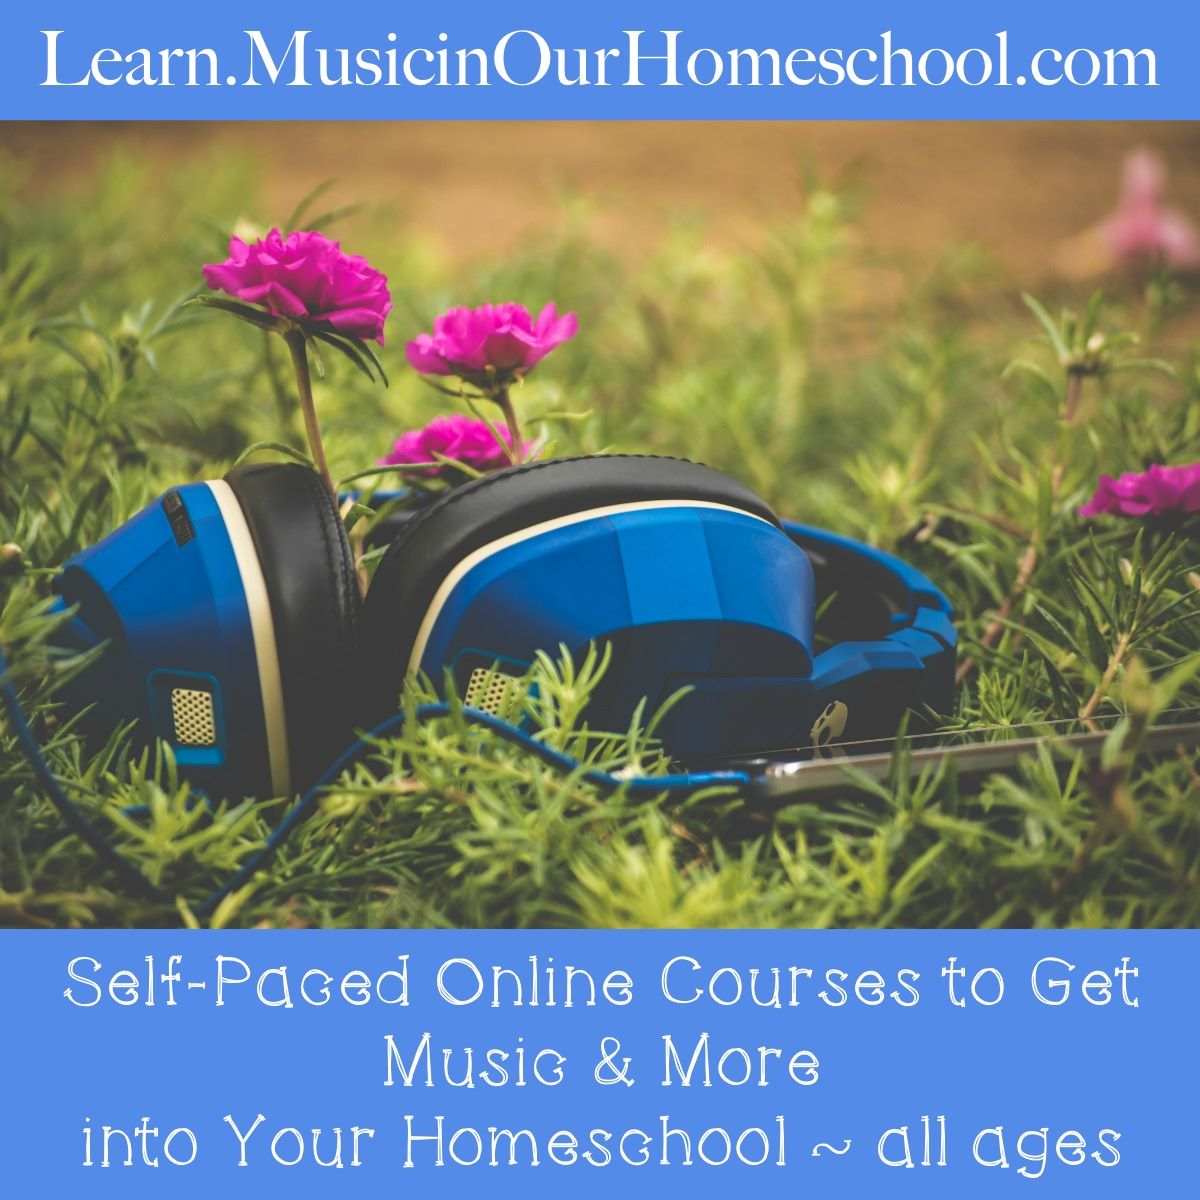 Learn Music in our Homeschool